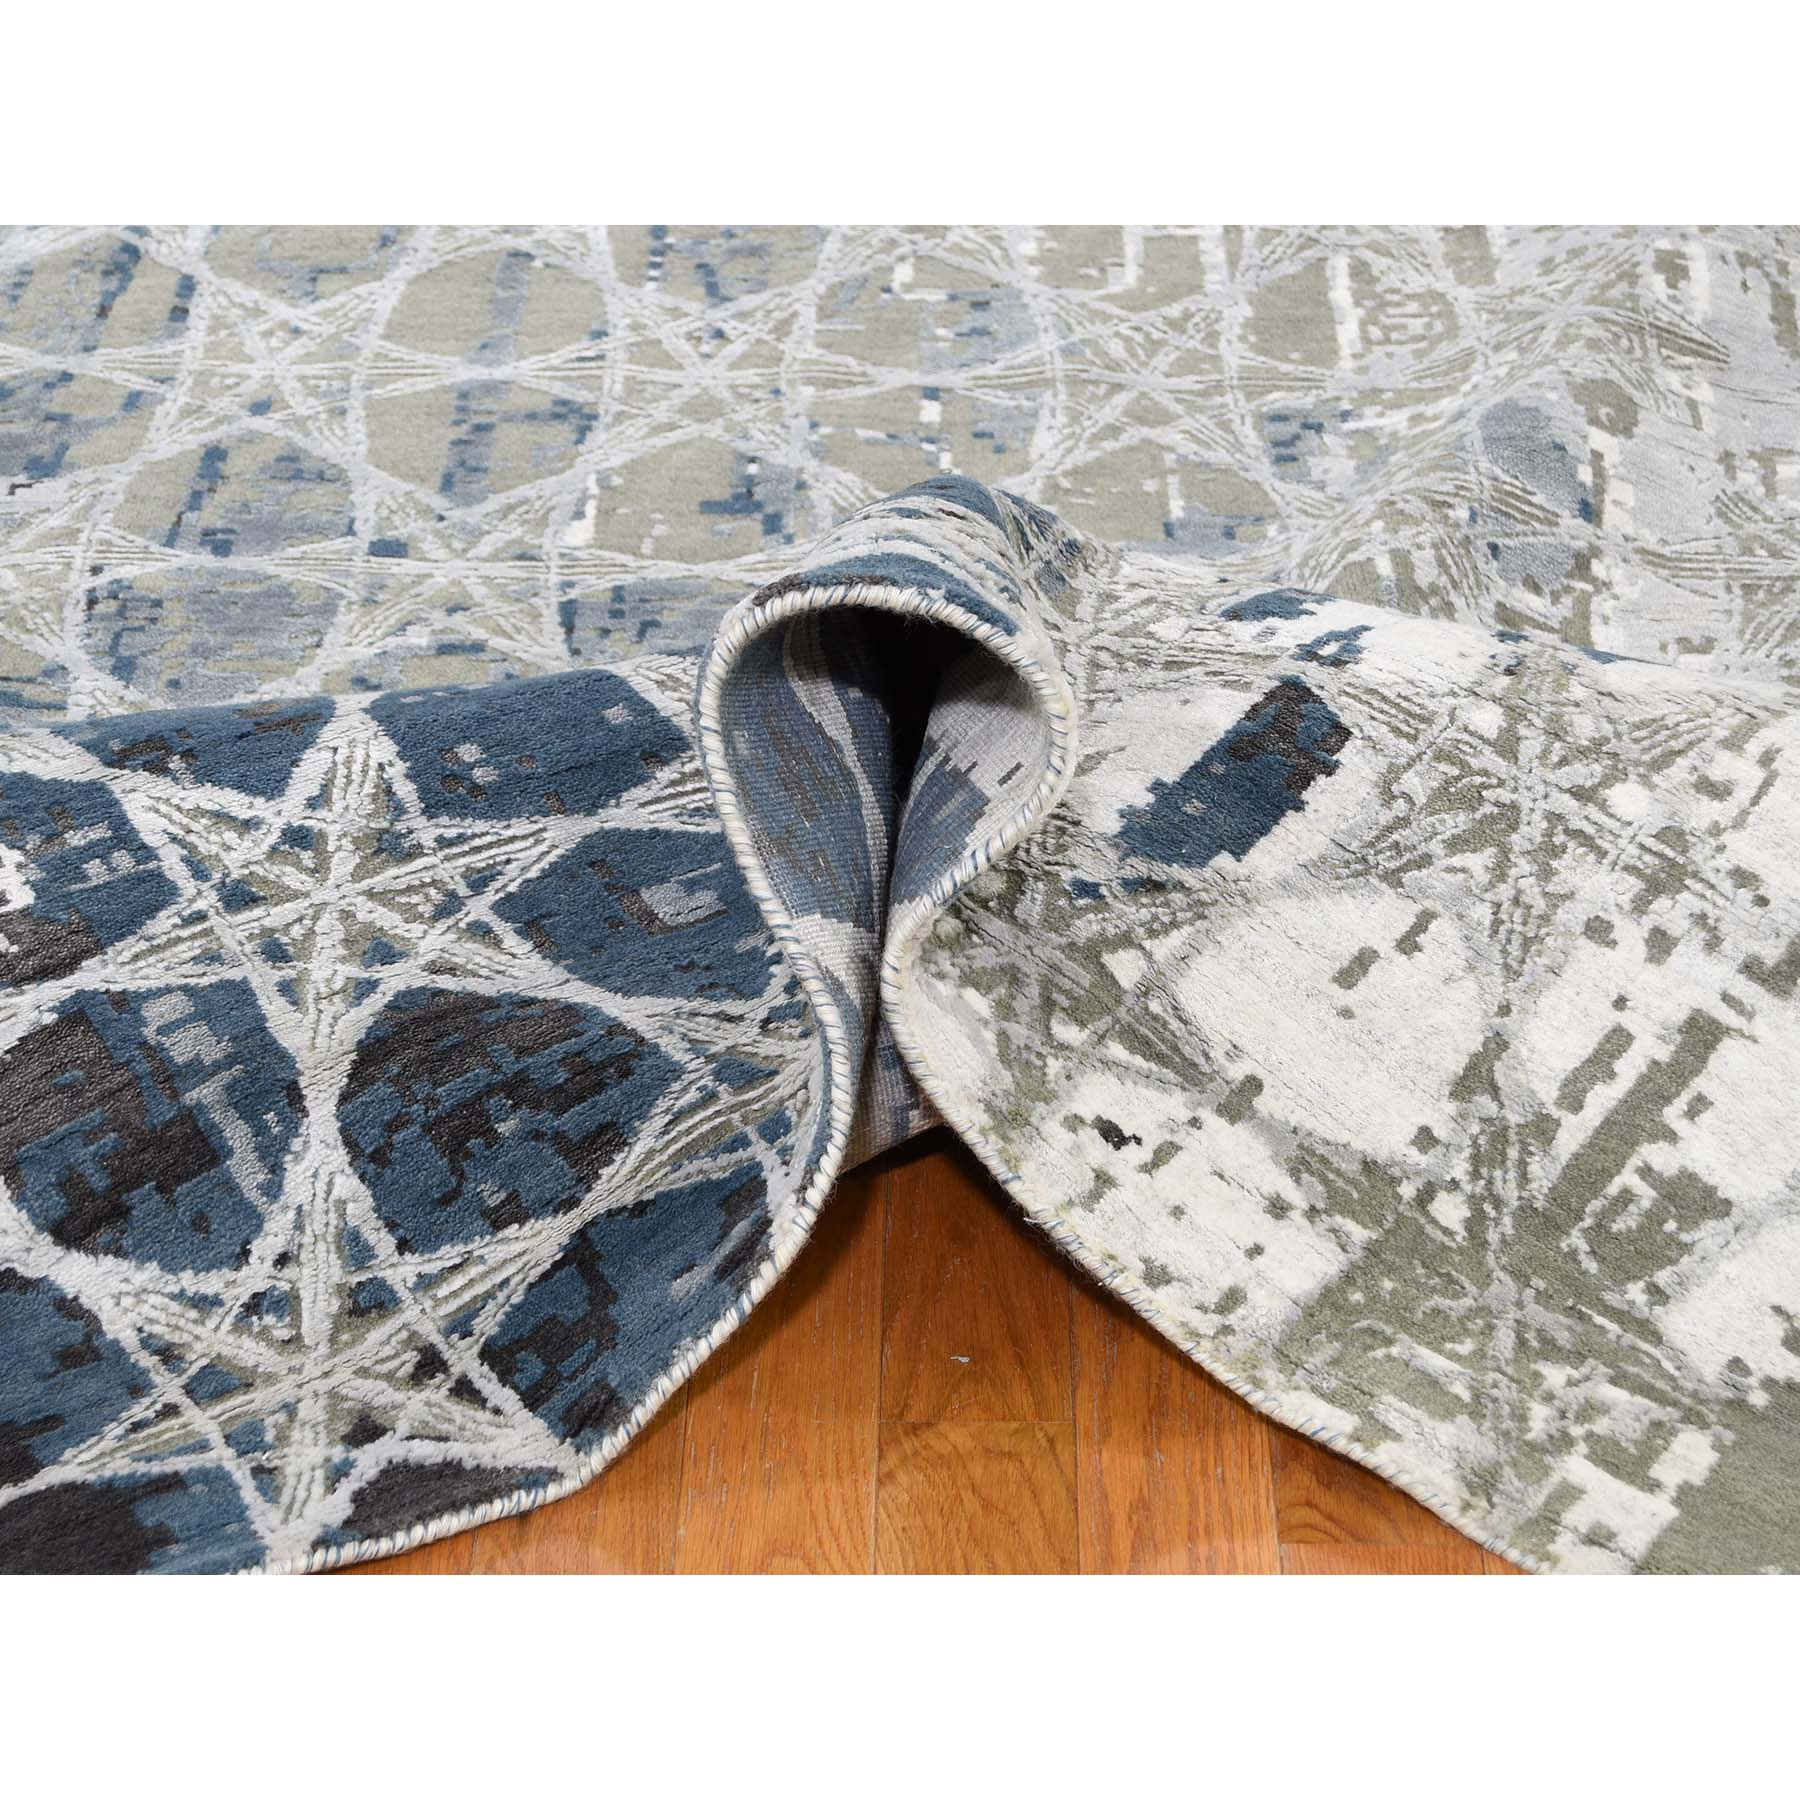 10-x14-1  THE HONEYCOMB Hand-Knotted Wool and Silk Award Winning Design Oriental Rug